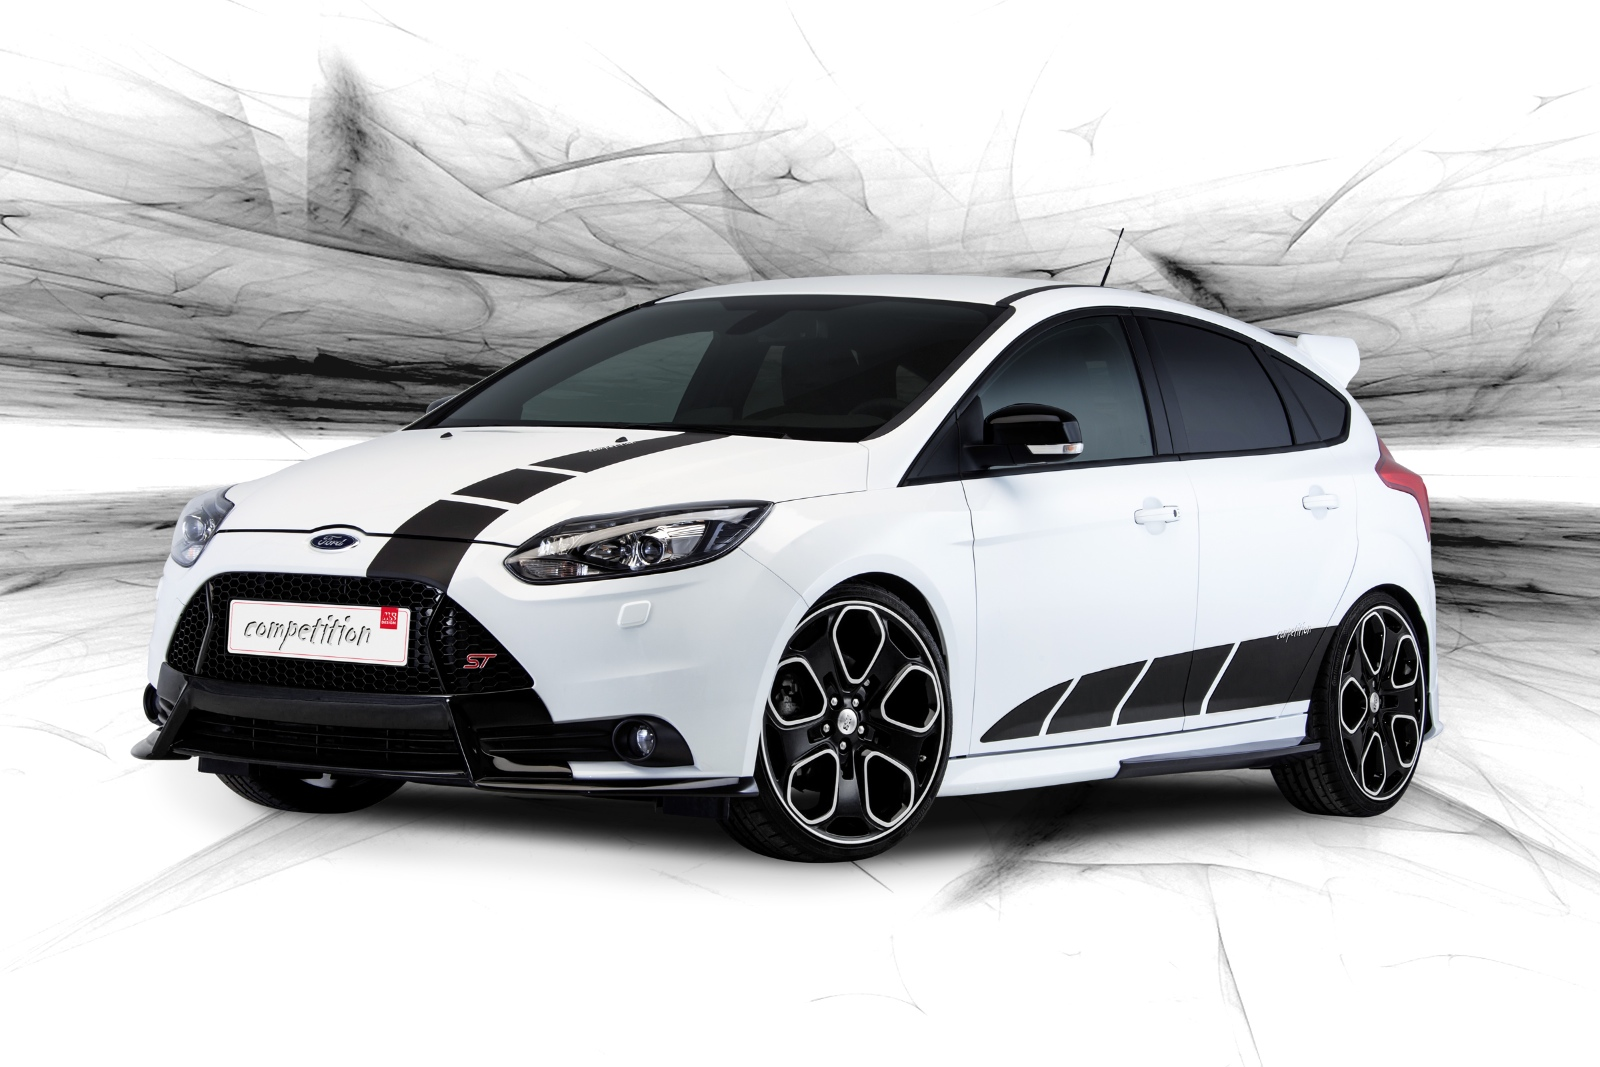 2013 ford focus st competition by ms design looks hot autoevolution. Black Bedroom Furniture Sets. Home Design Ideas